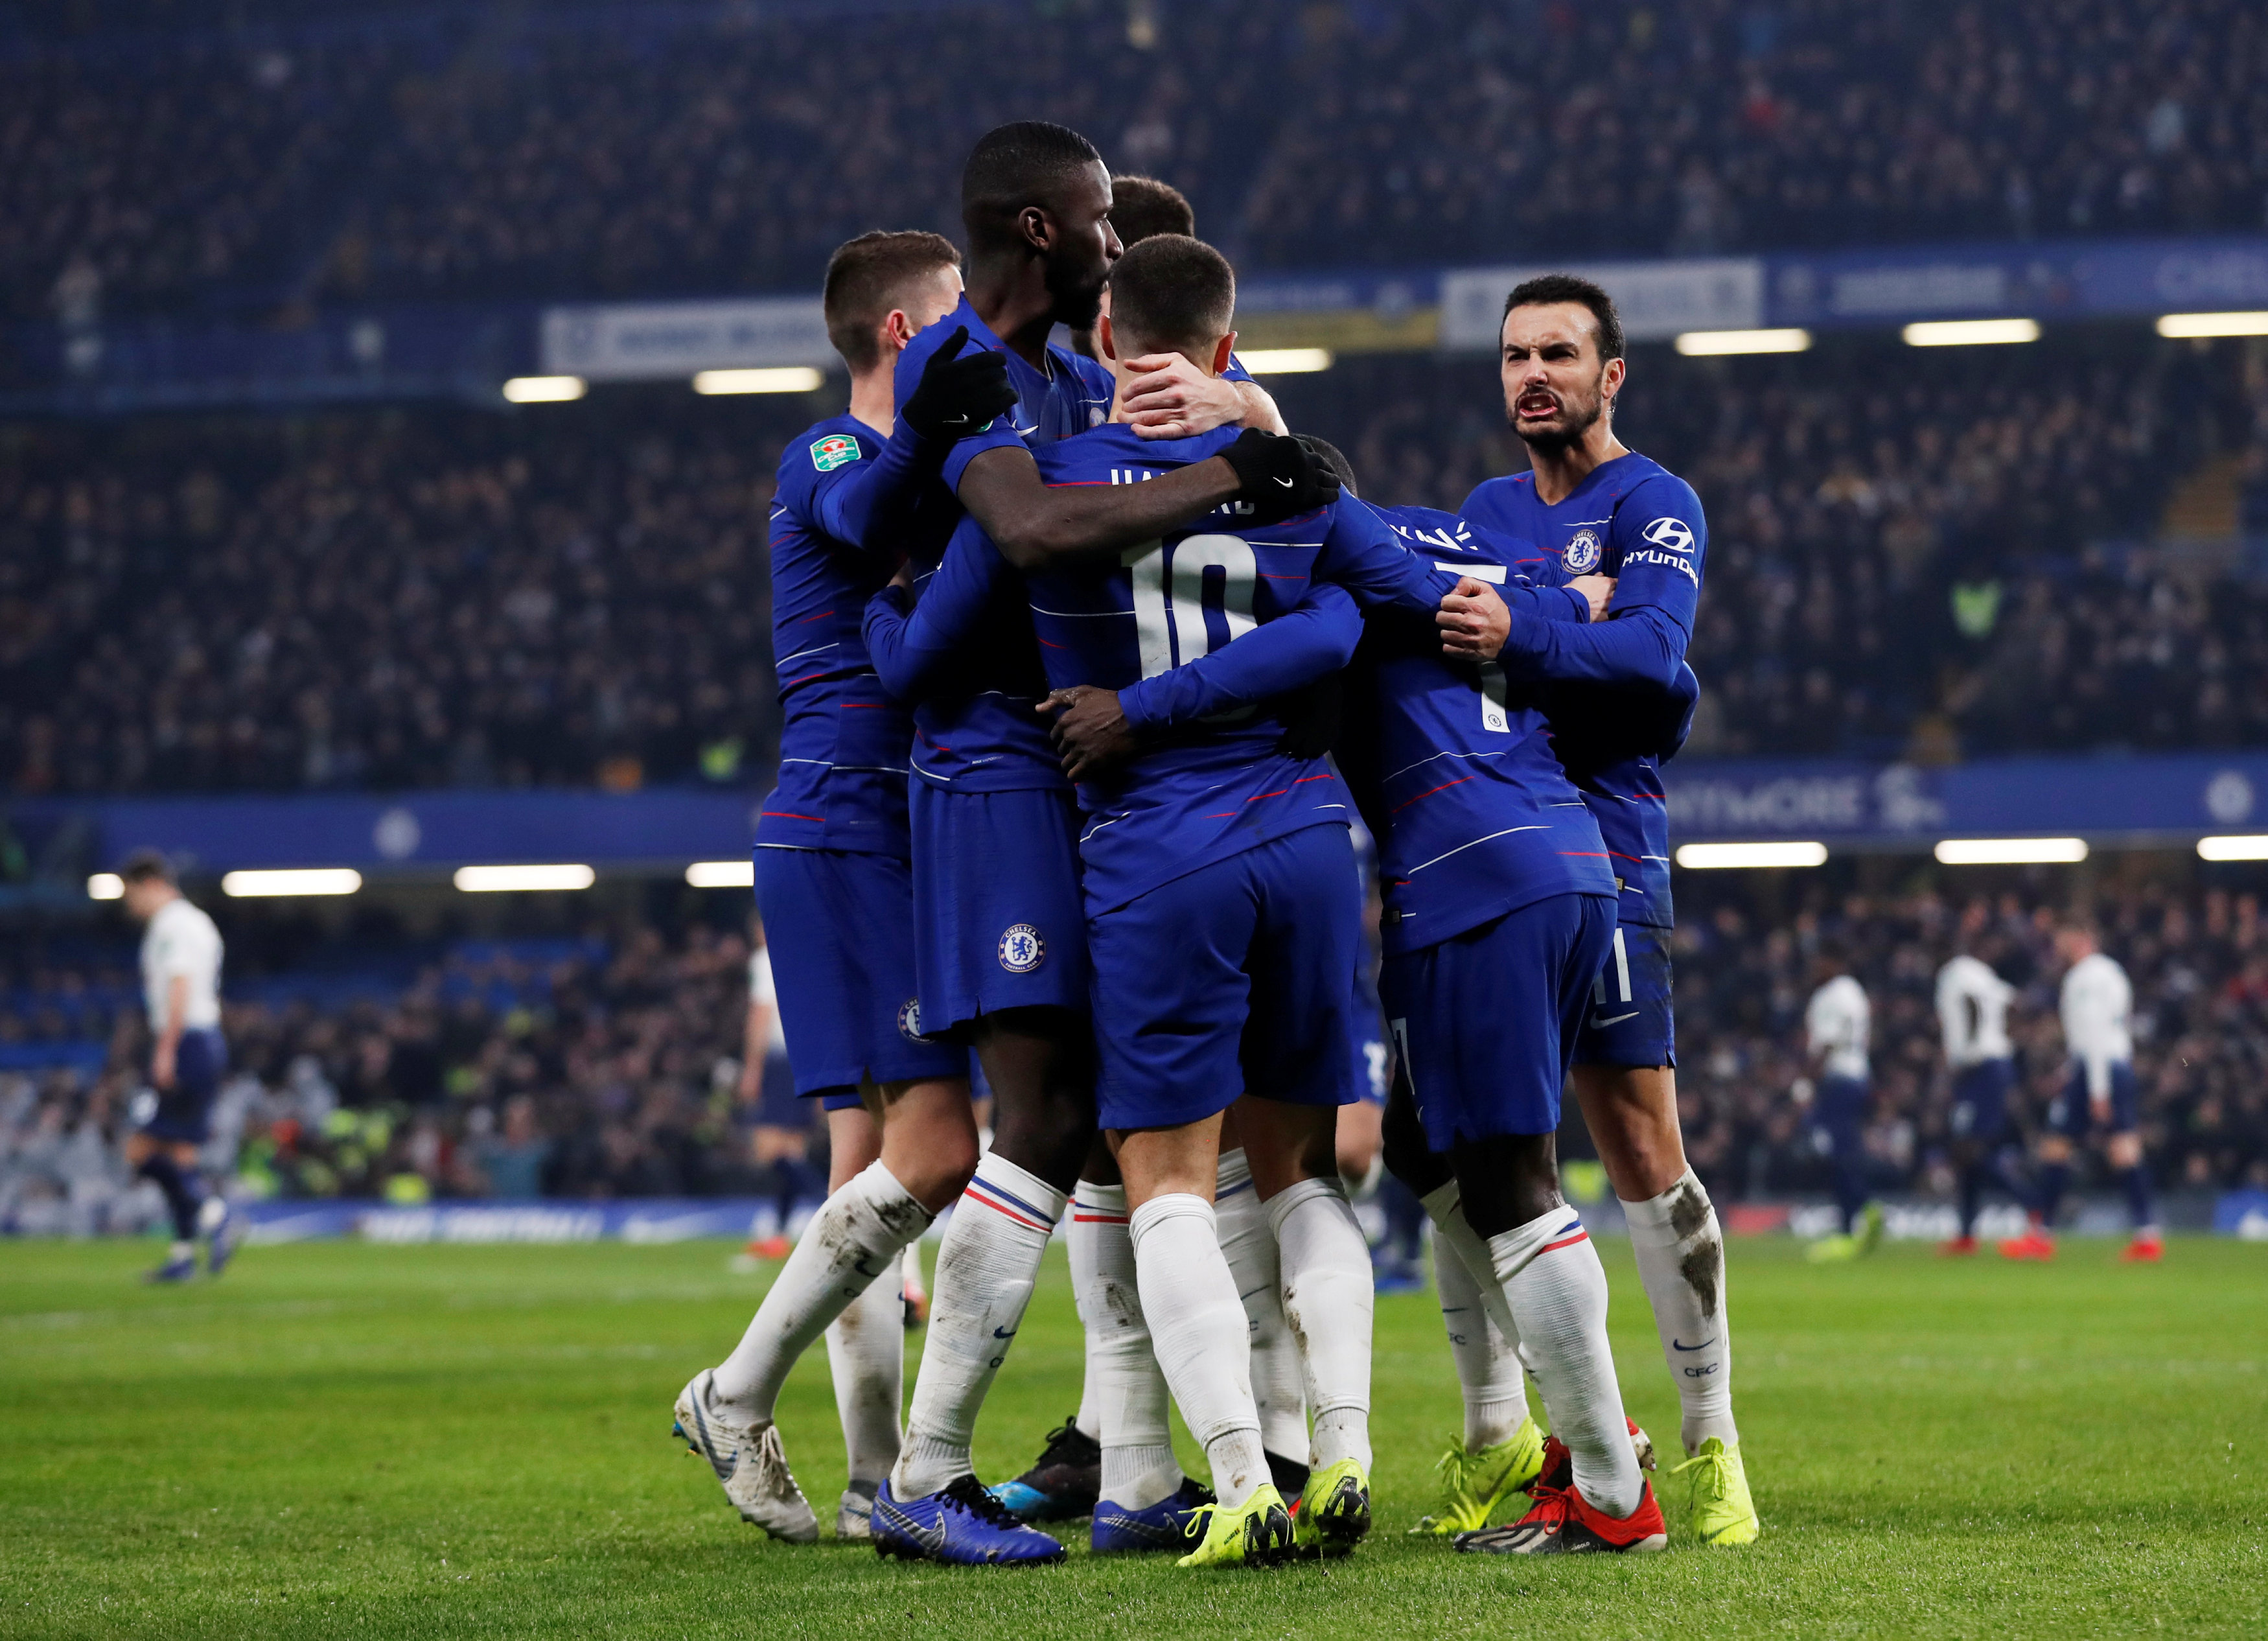 Chelsea FC latest results today: recent Premier League match news 2019!